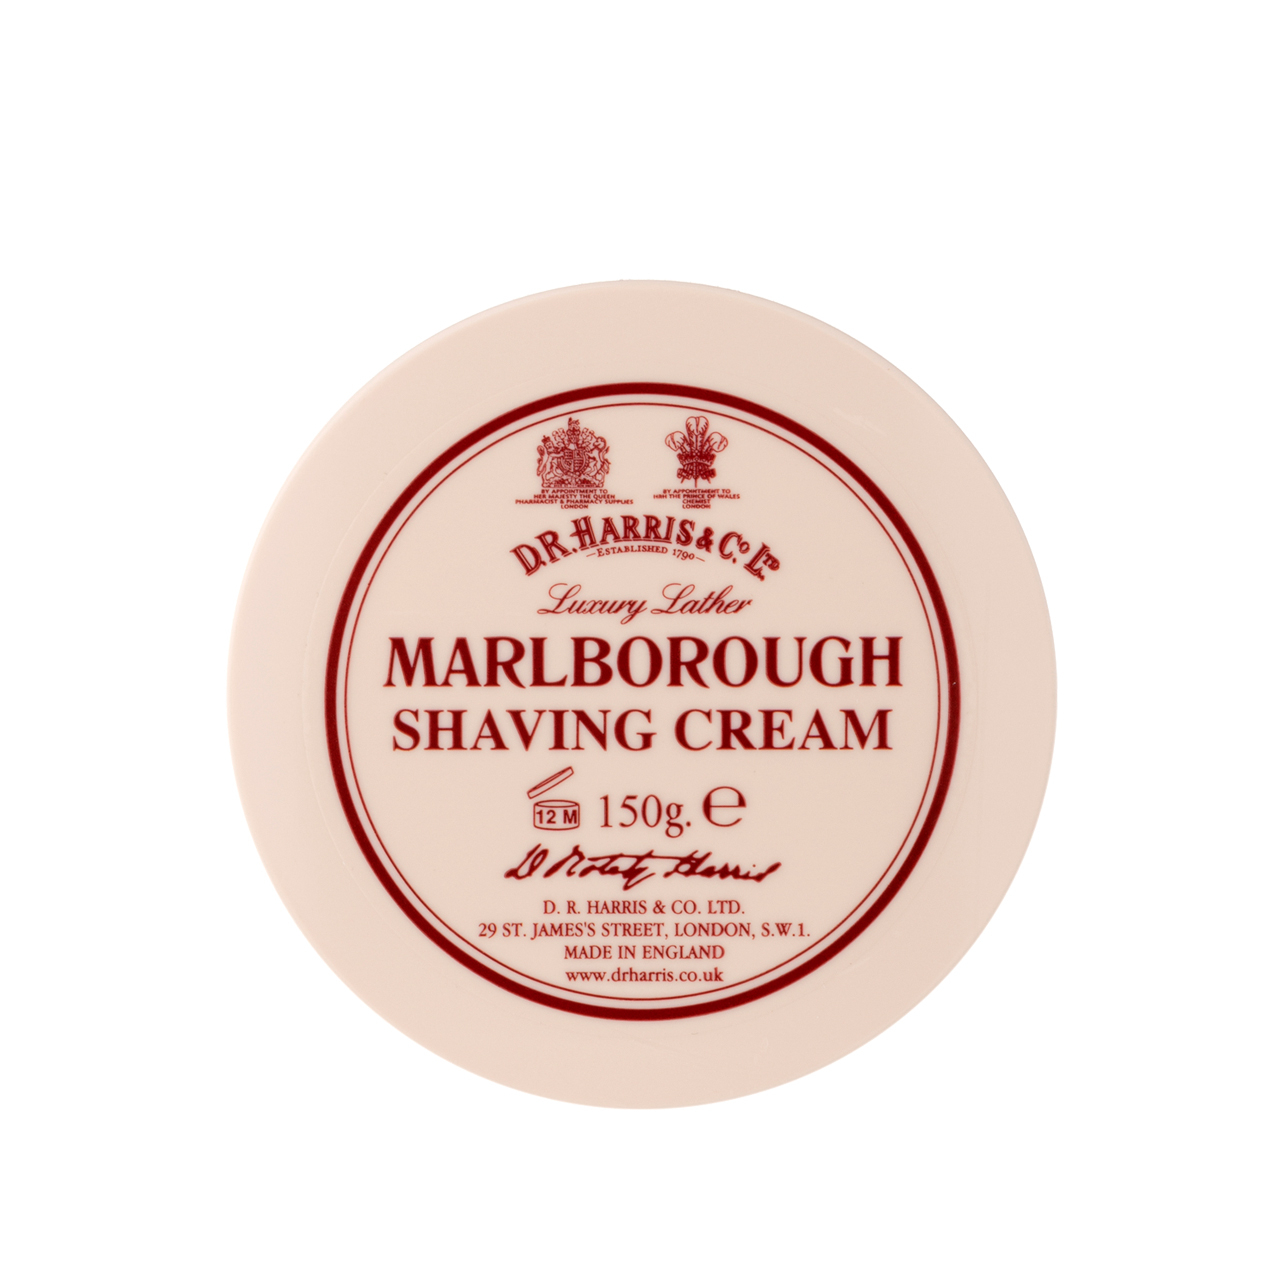 Marlborough - Shaving Cream Bowl